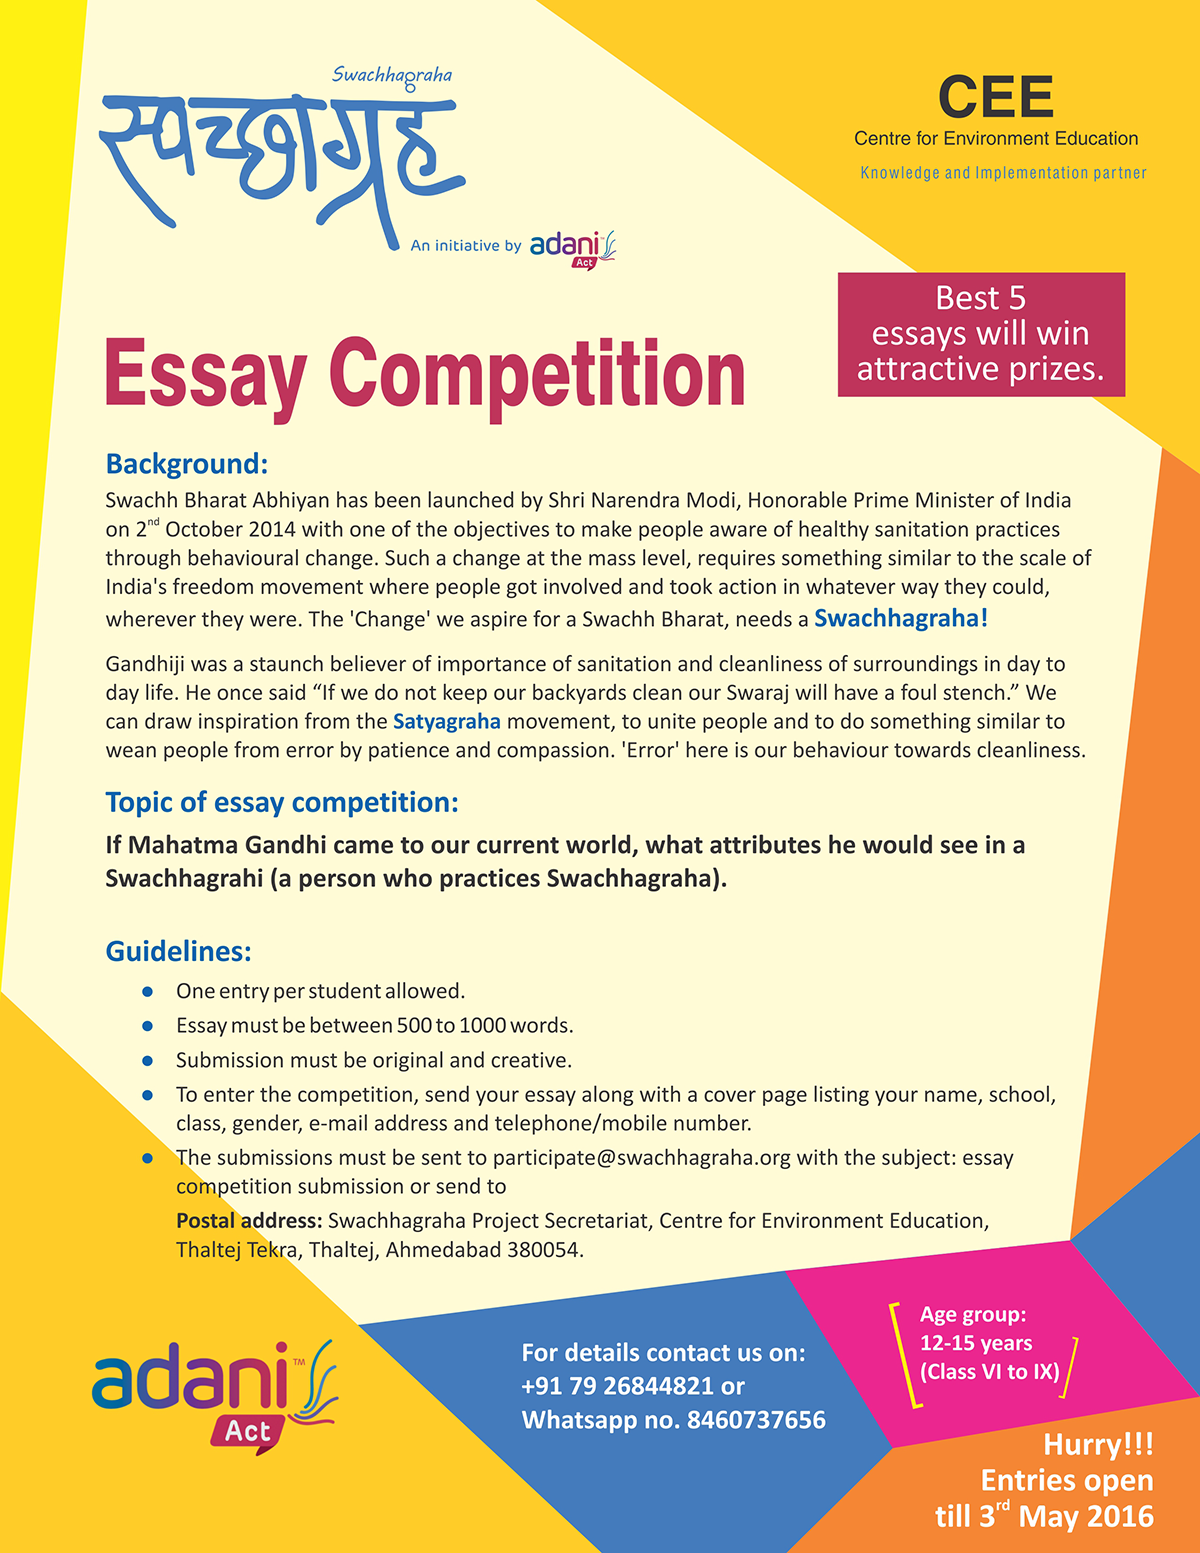 011 20180129171946essay20competition Essay About Cleanliness In School Phenomenal Writing On Premises Full